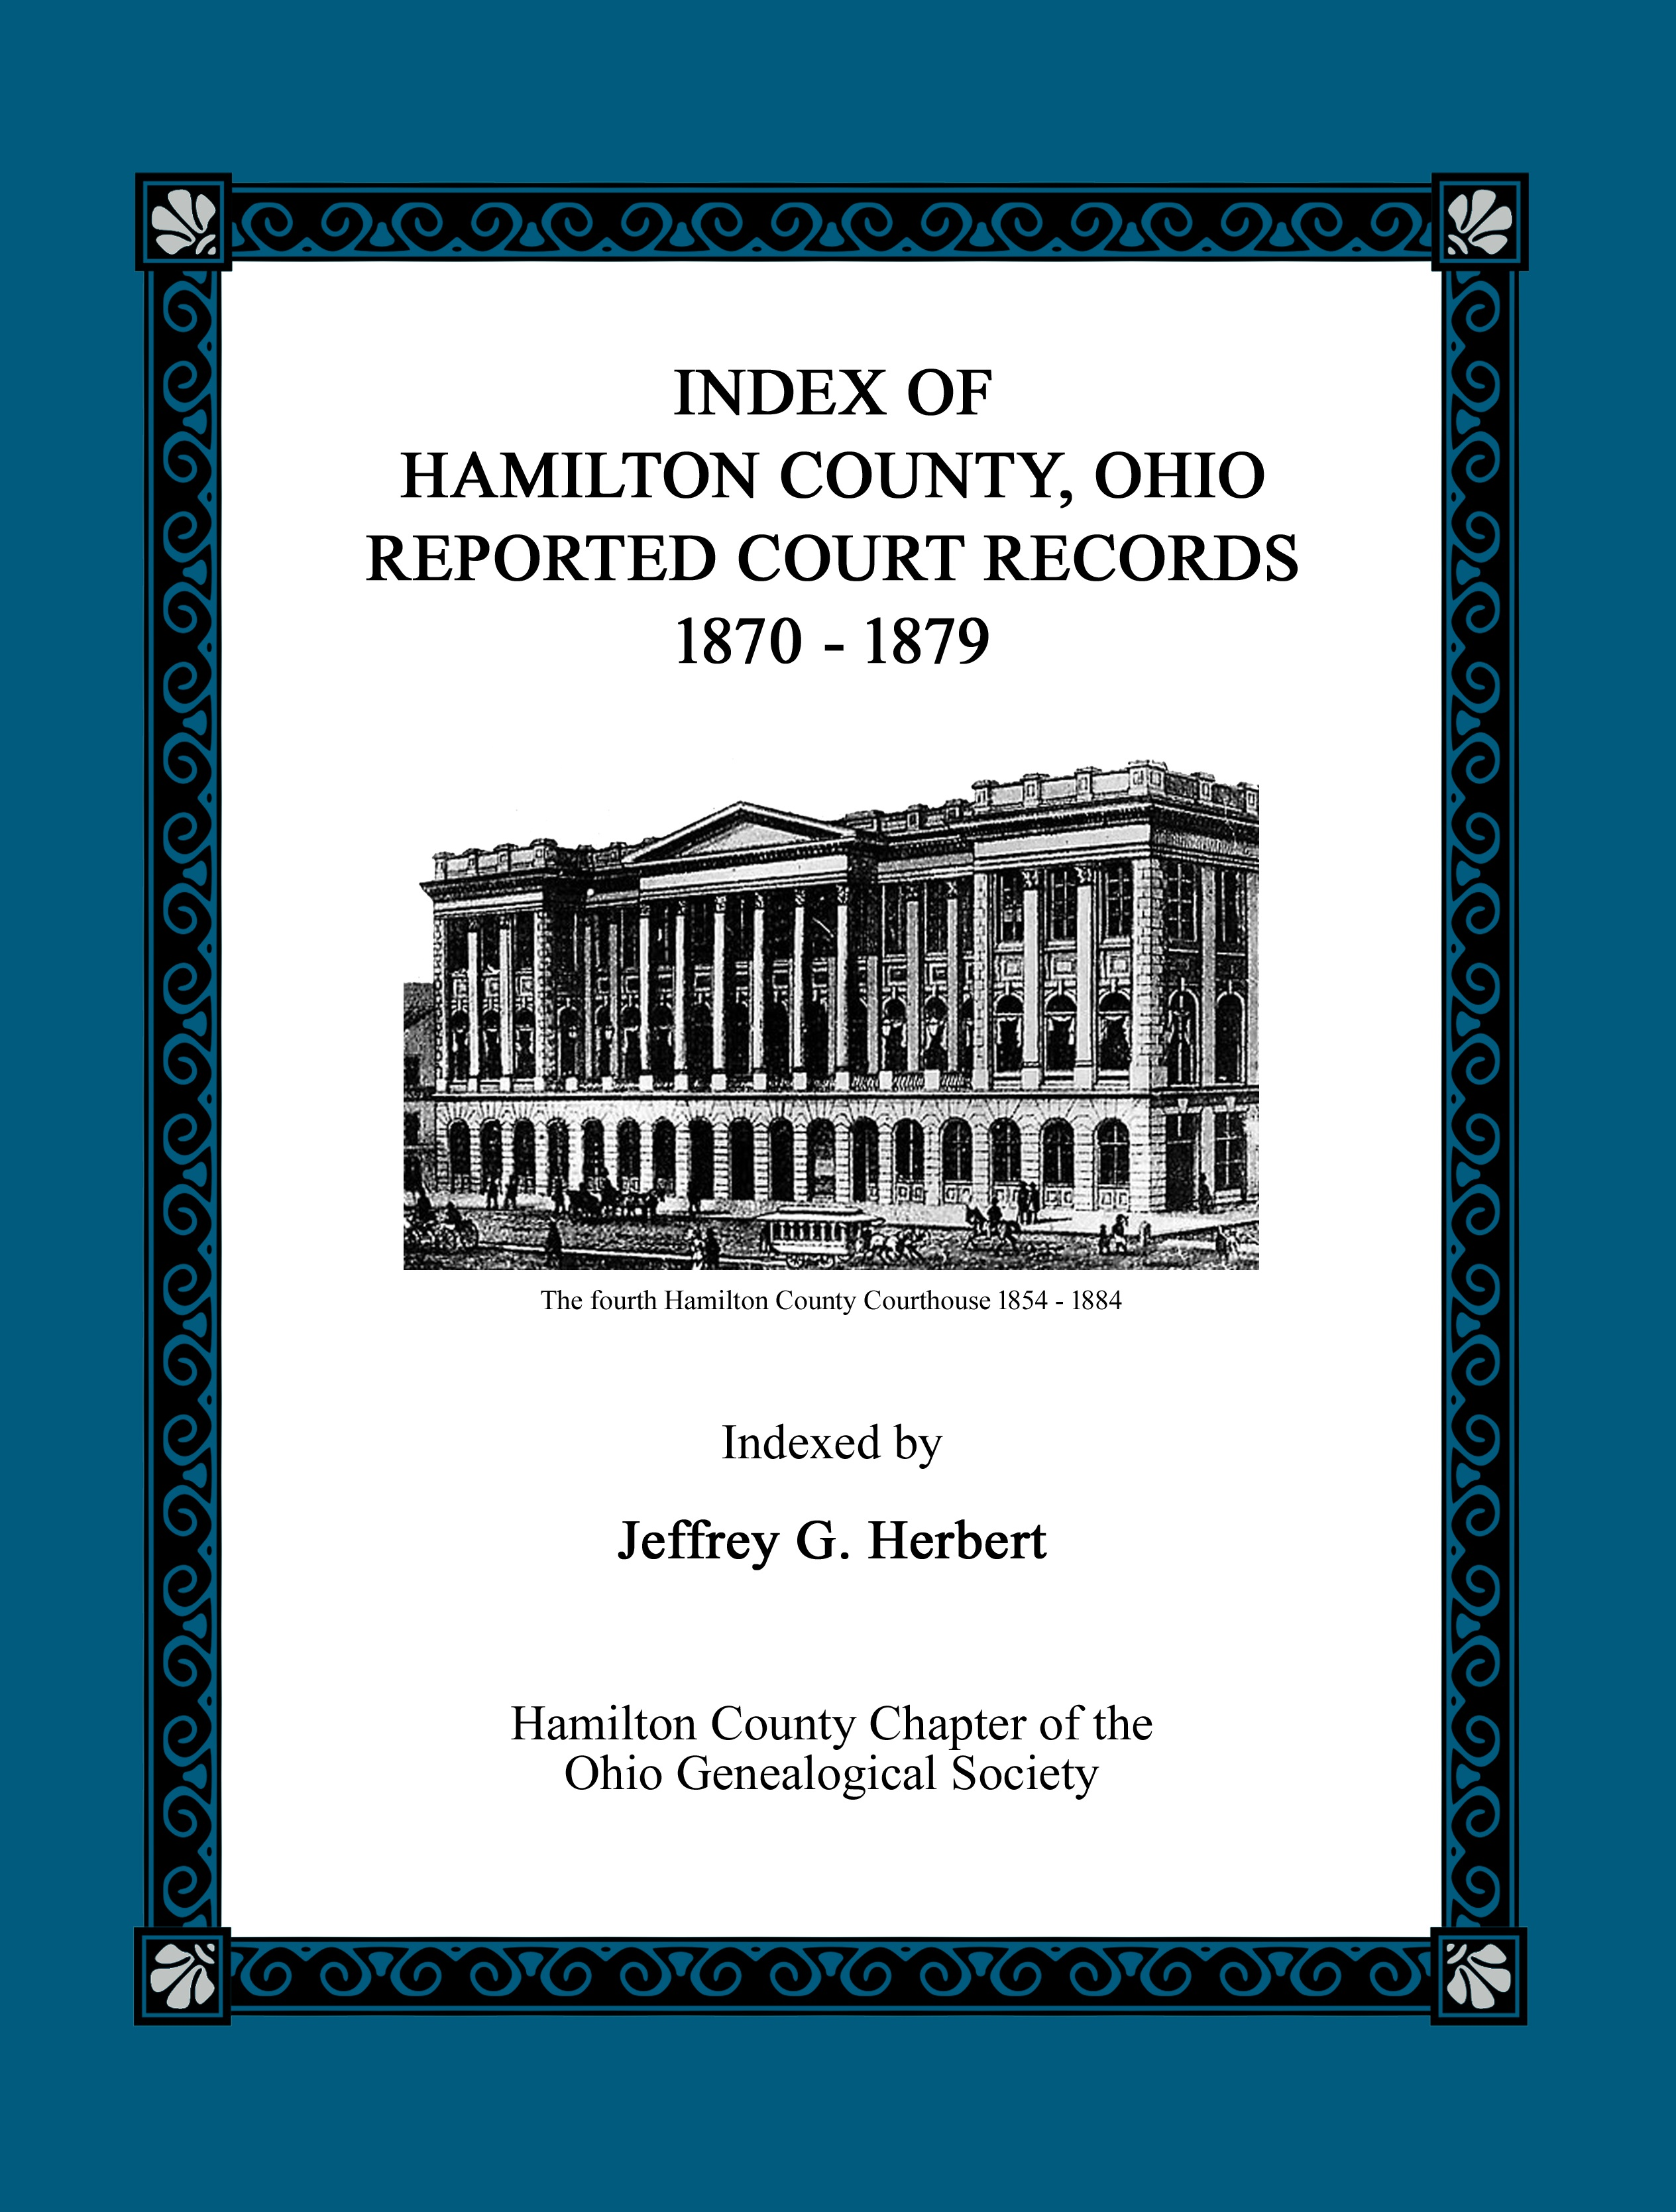 Index of Hamilton County, Ohio Reported Court Records 1870 – 1879